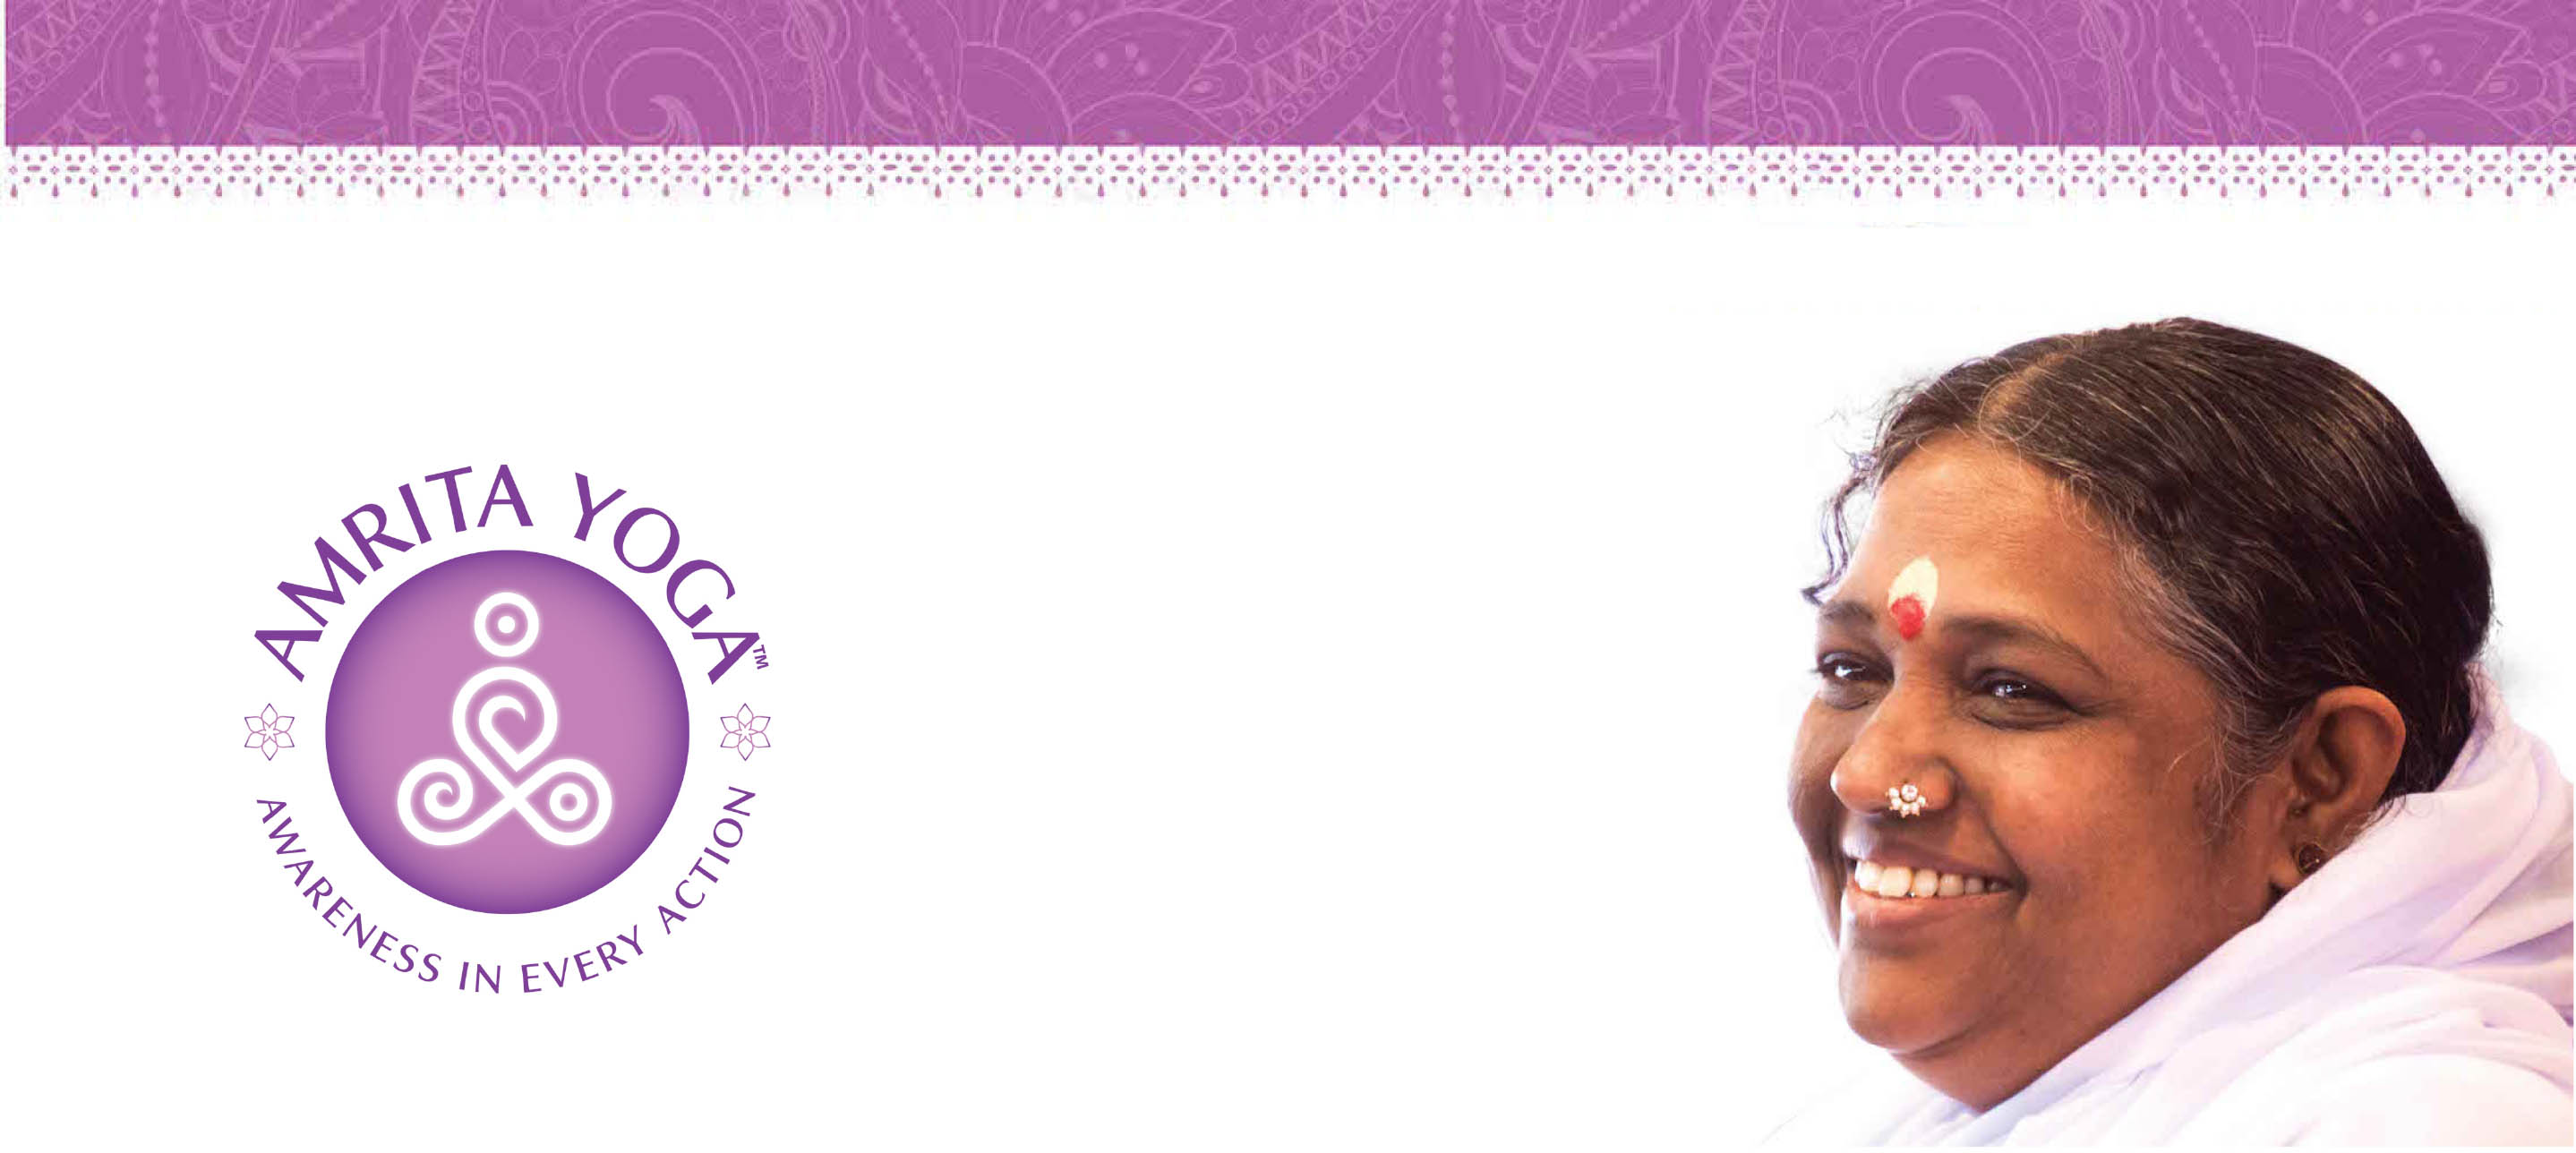 amma pic for header of amrita yoga who we are page